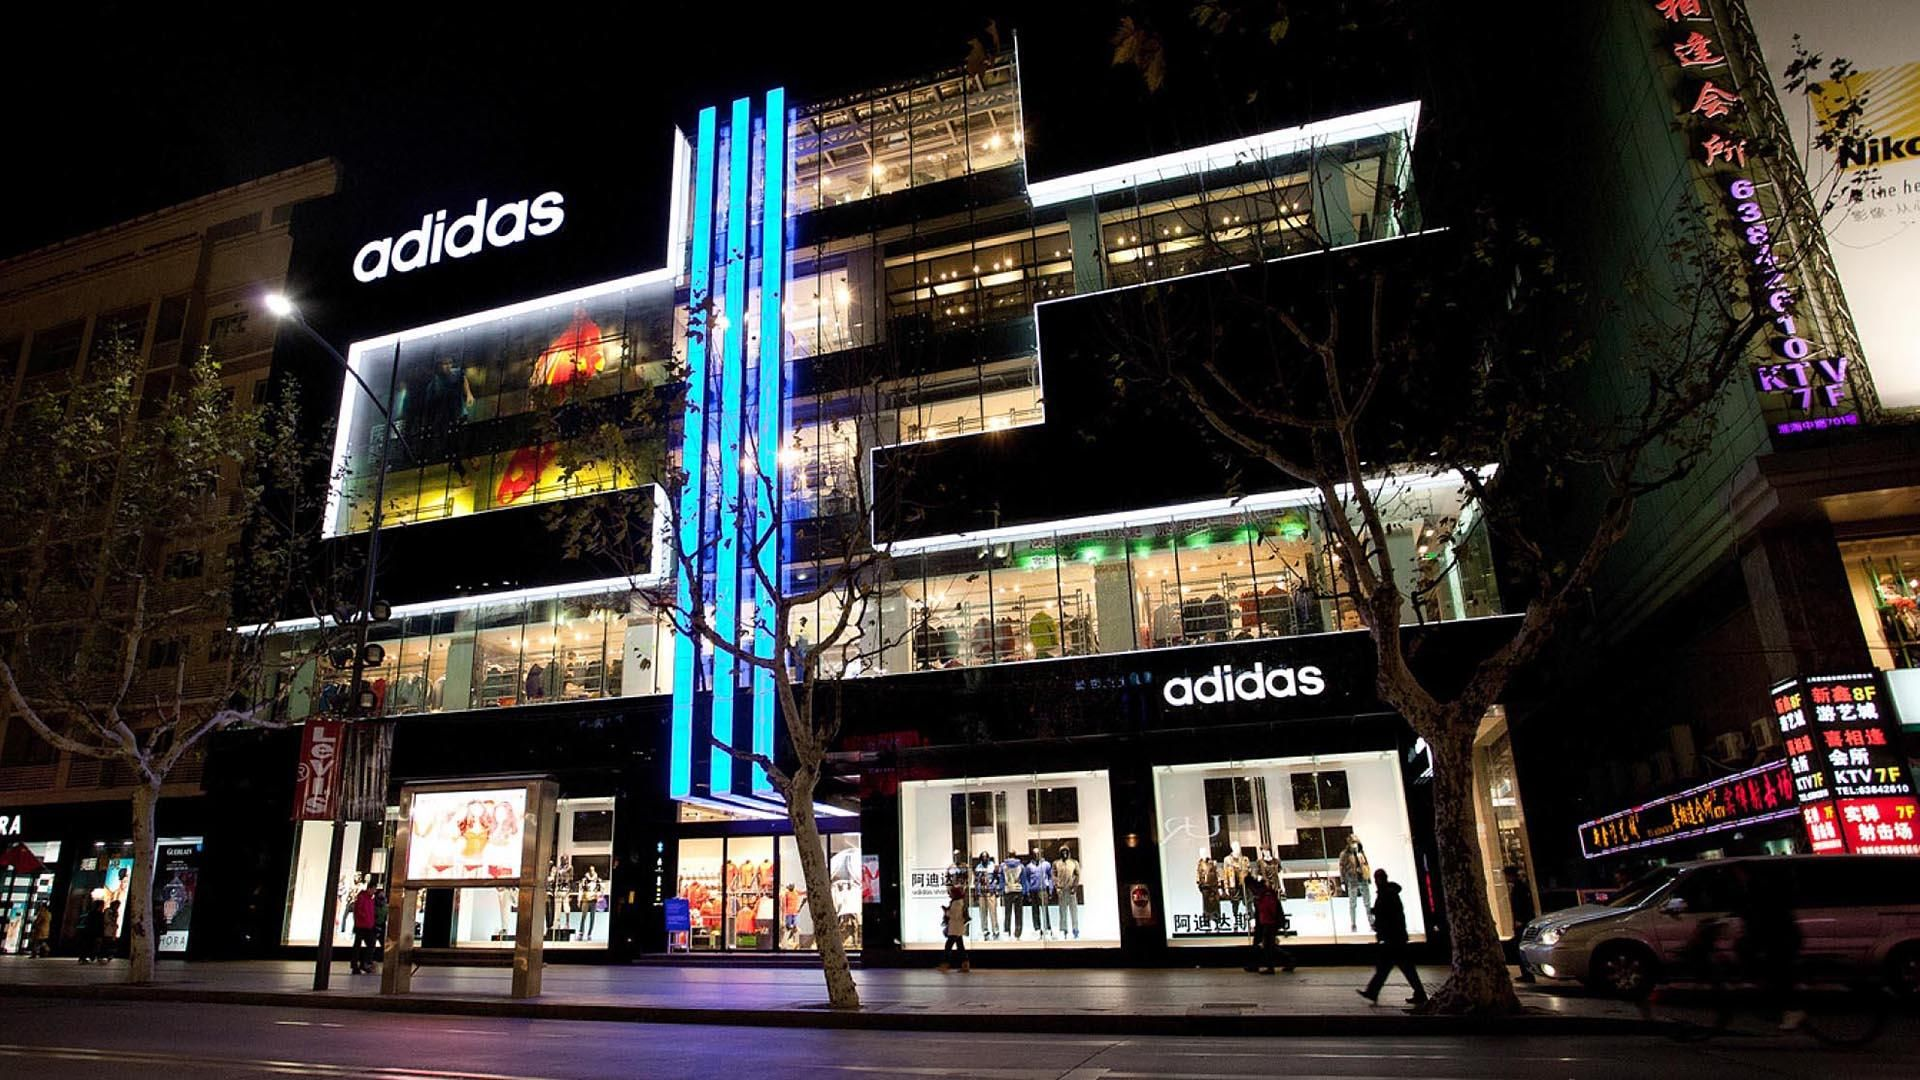 Global Interior Interactive Design Agency - Multi-Channel Retail Adidas Shanghai \\\ StartJG